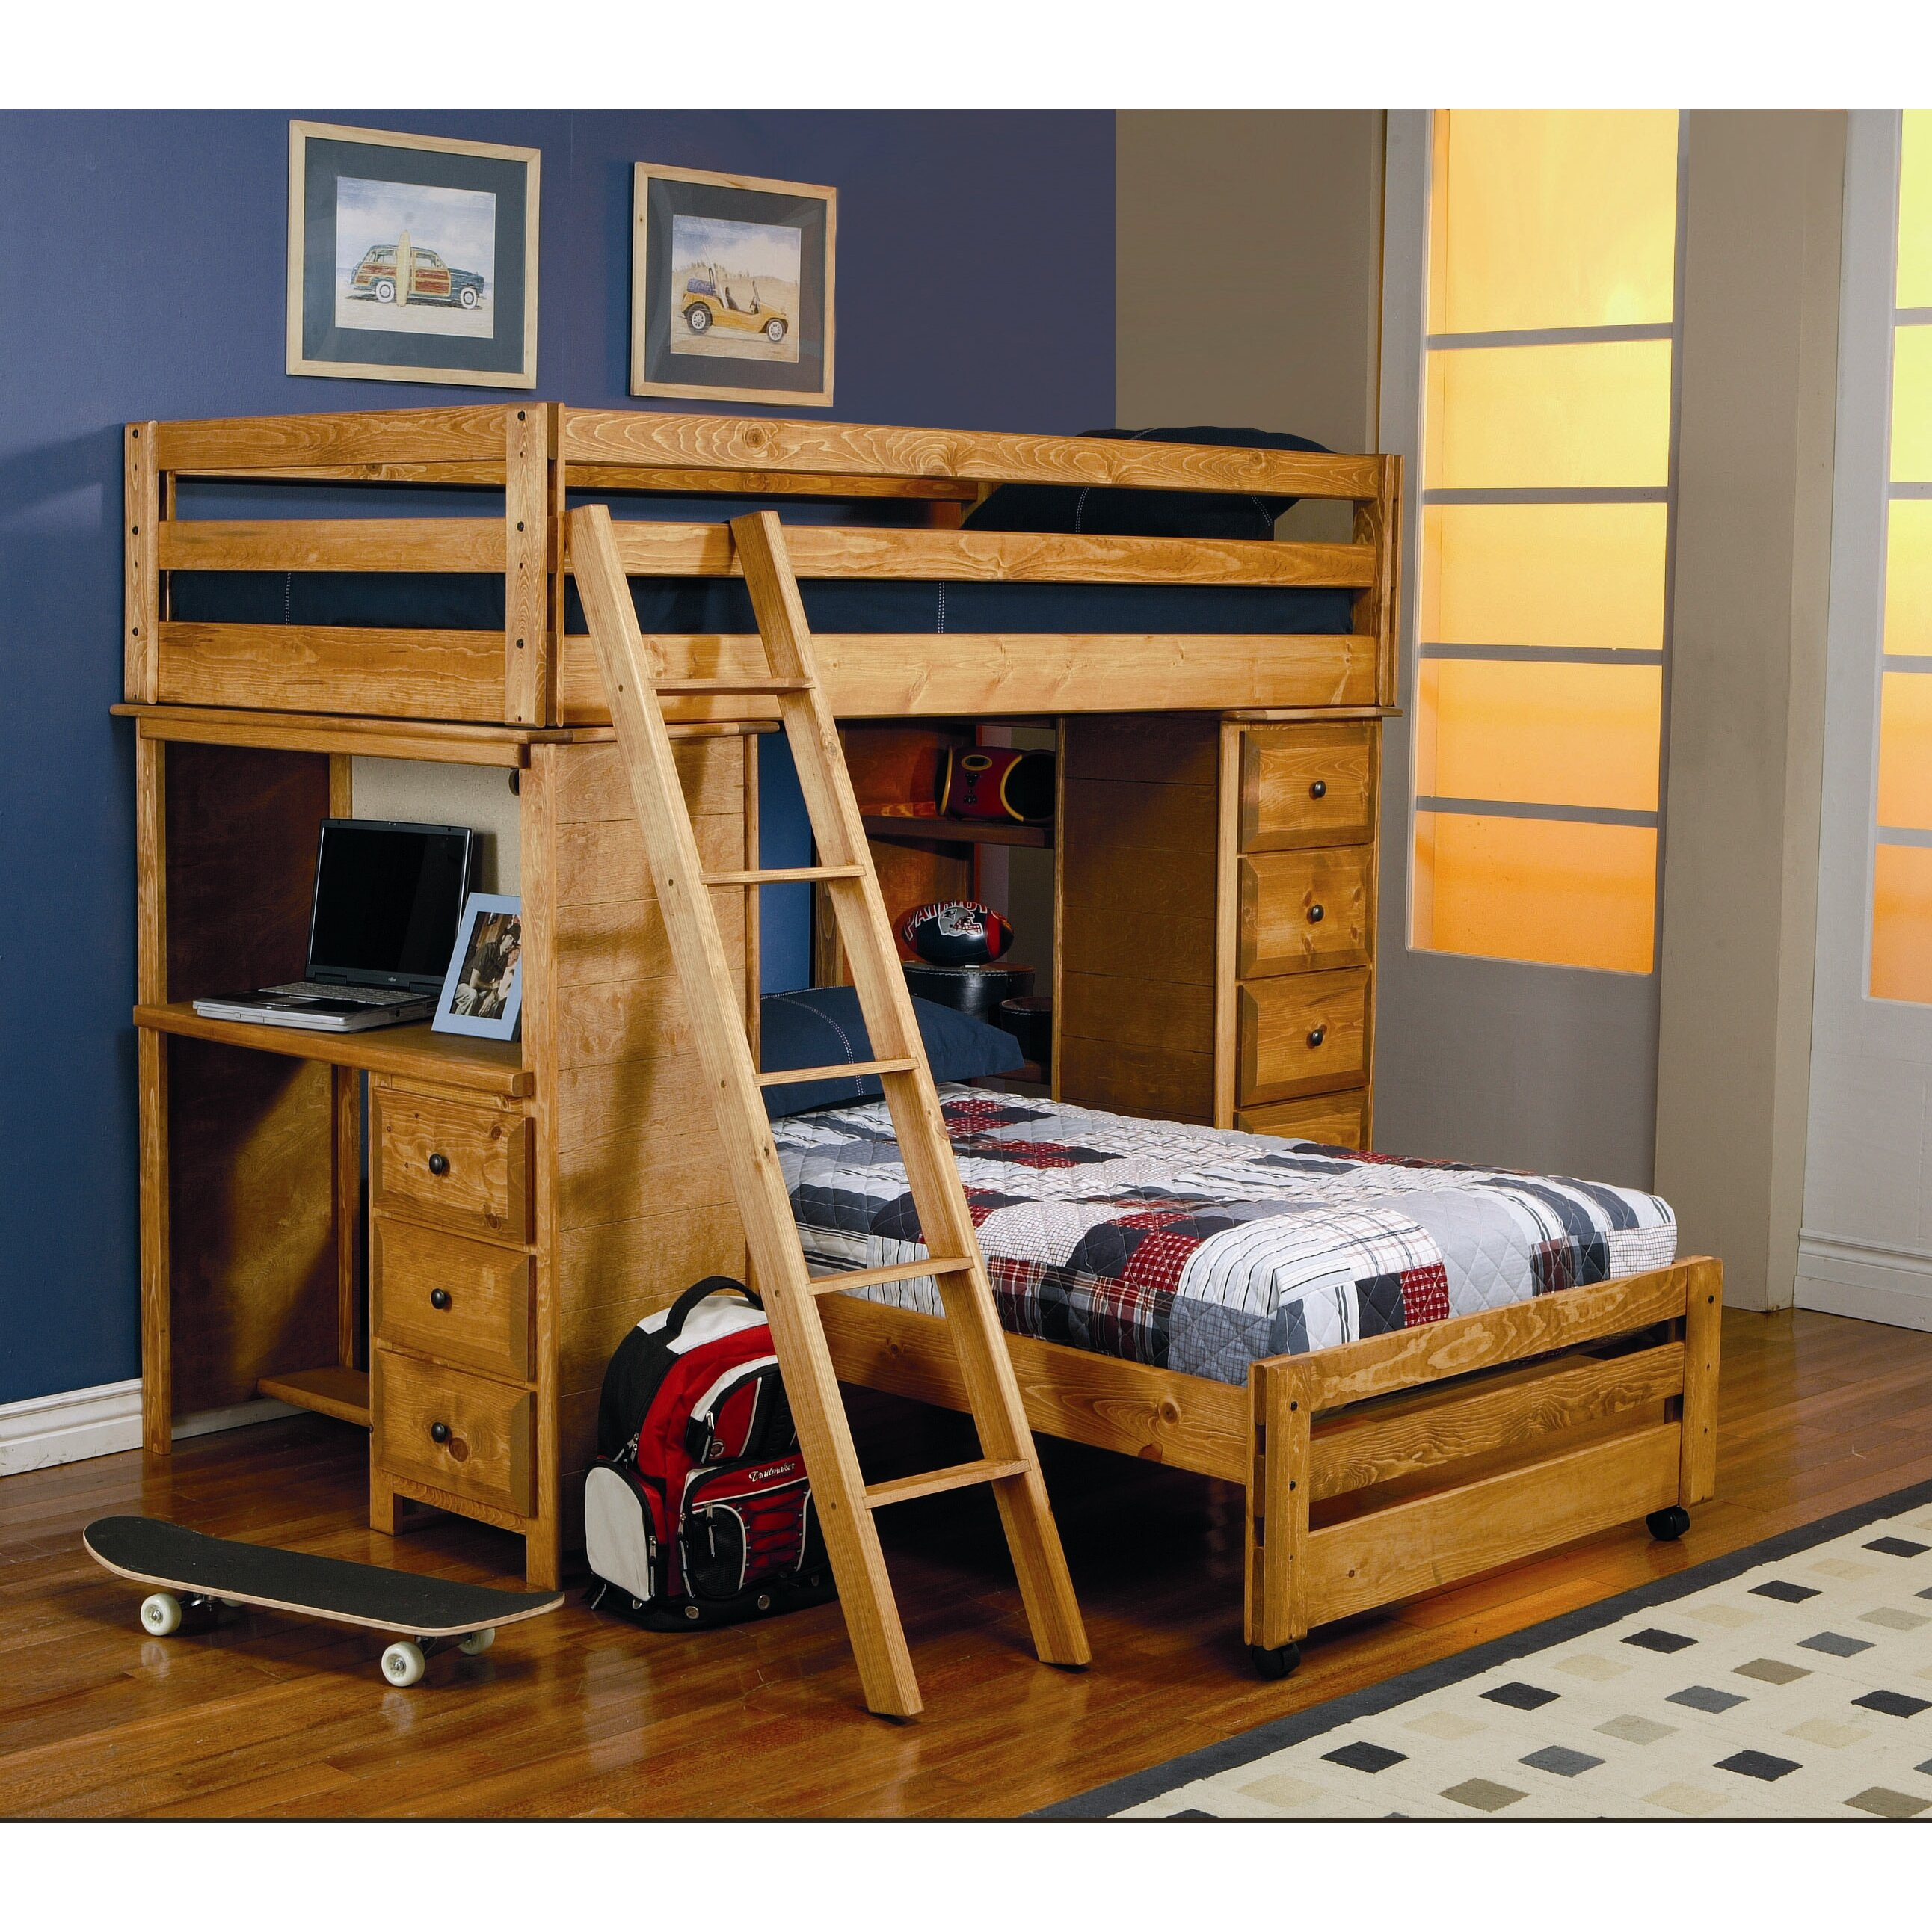 Bunk beds for adults with desk - Enchanted Twin L Shaped Bunk Bed With Storage